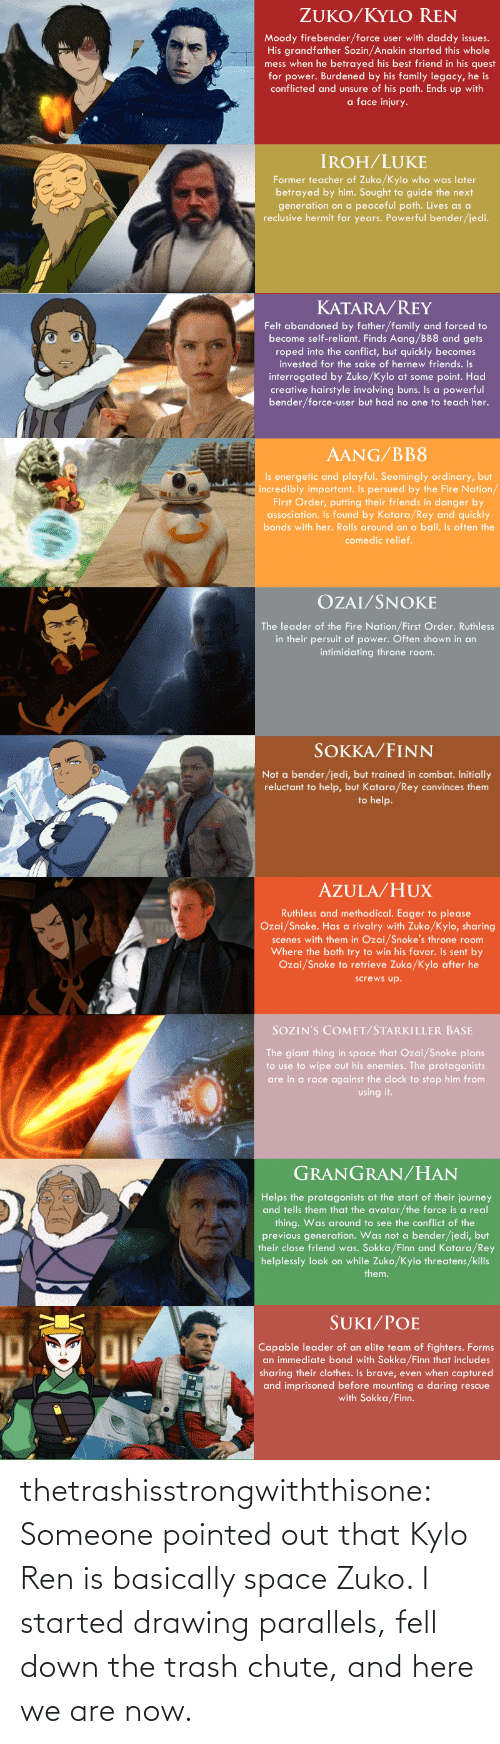 Sokka: ZUKO/KYLO REN  Moody firebender/force user with daddy issues.  His grandfather Sozin/Anakin started this whole  mess when he betrayed his best friend in his quest  for power. Burdened by his family legacy, he is  conflicted and unsure of his path. Ends up with  a face injury.  IROH/LUKE  Former teacher of Zuko/Kylo who was later  betrayed by him. Sought to guide the next  generation on a peaceful path. Lives as a  reclusive hermit for years. Powerful bender/jedi.   KATARA/REY  Felt abandoned by father/family and forced to  become self-reliant. Finds Aang/BB8 and gets  roped into the conflict, but quickly becomes  invested for the sake of hernew friends. Is  interrogated by Zuko/Kylo at some point. Had  creative hairstyle involving buns. Is a powerful  bender/force-user but had no one to teach her.  AANG/BB8  Is energetic and playful. Seemingly ordinary, but  incredibly important. Is persued by the Fire Nation/  First Order, putting their friends in danger by  association. Is found by Katara/Rey and quickly  bonds with her. Rolls around on a ball. Is often the  comedic relief.   OZAI/SNOKE  The leader of the Fire Nation/First Order. Ruthless  in their persuit of power. Often shown in an  intimidating throne room.  SOKKA/FINN  Not a bender/jedi, but trained in combat. Initially  reluctant to help, but Katara/Rey convinces them  to help.   AZULA/HUX  Ruthless and methodical. Eager to please  Ozai/Snoke. Has a rivalry with Zuko/Kylo, sharing  scenes with them in Ozai/Snoke's throne room  Where the both try to win his favor. Is sent by  Ozai/Snoke to retrieve Zuko/Kylo after he  KAN  LEGO  screws up.  SOZIN'S COMET/STARKILLER BASE  The giant thing in space that Ozai/Snoke plans  to use to wipe out his enemies. The protagonists  are in a race against the clock to stop him from  using it.   GRANGRAN/HAN  Helps the protagonists at the start of their journey  and tells them that the avatar/the force is a real  thing. Was around to see the conflict of the  previous gen